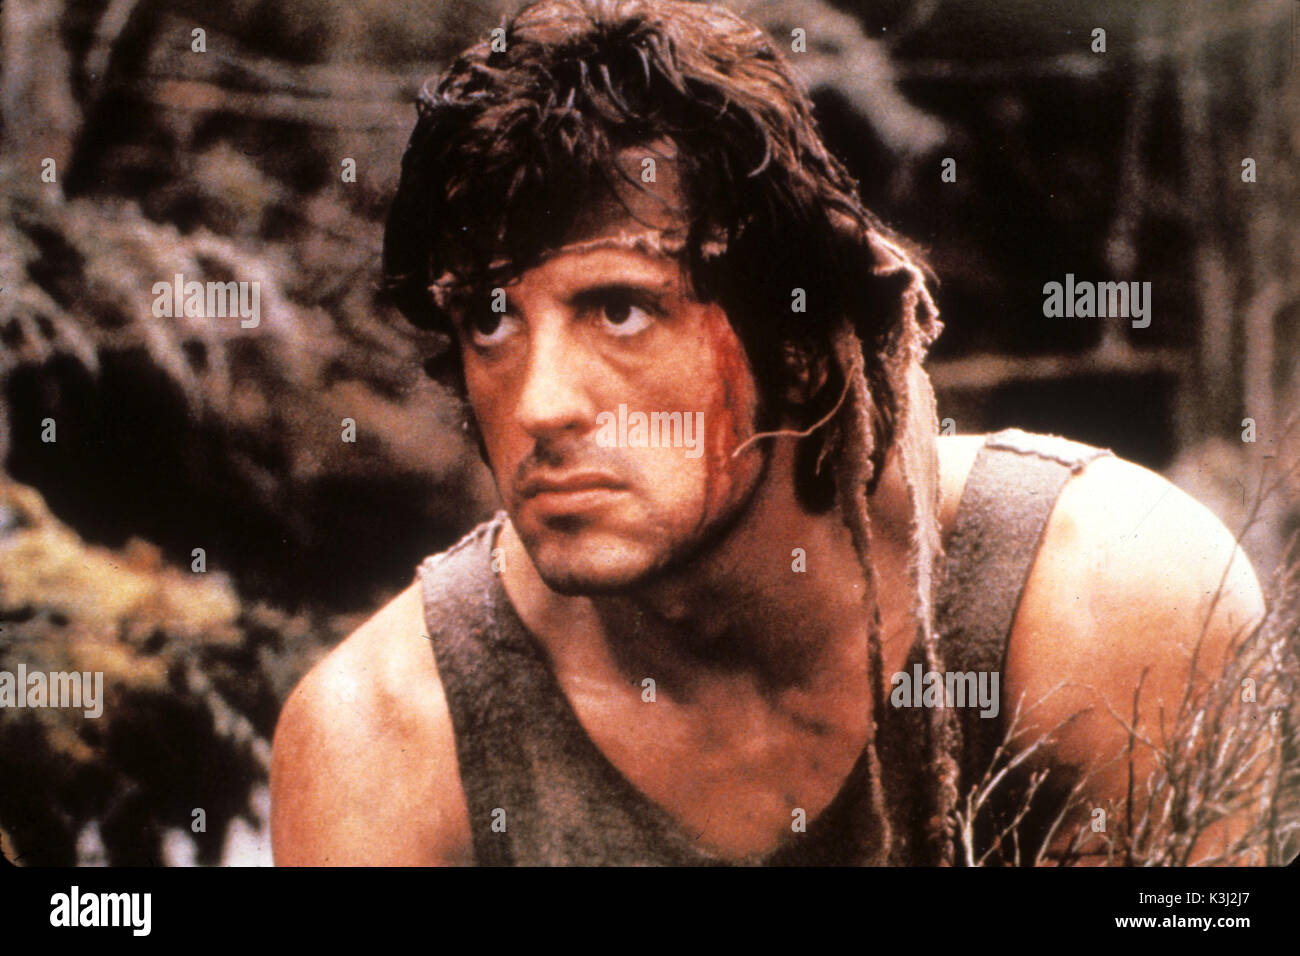 FIRST BLOOD aka RAMBO: FIRST BLOOD SYLVESTER STALLONE     Date: 1982 - Stock Image